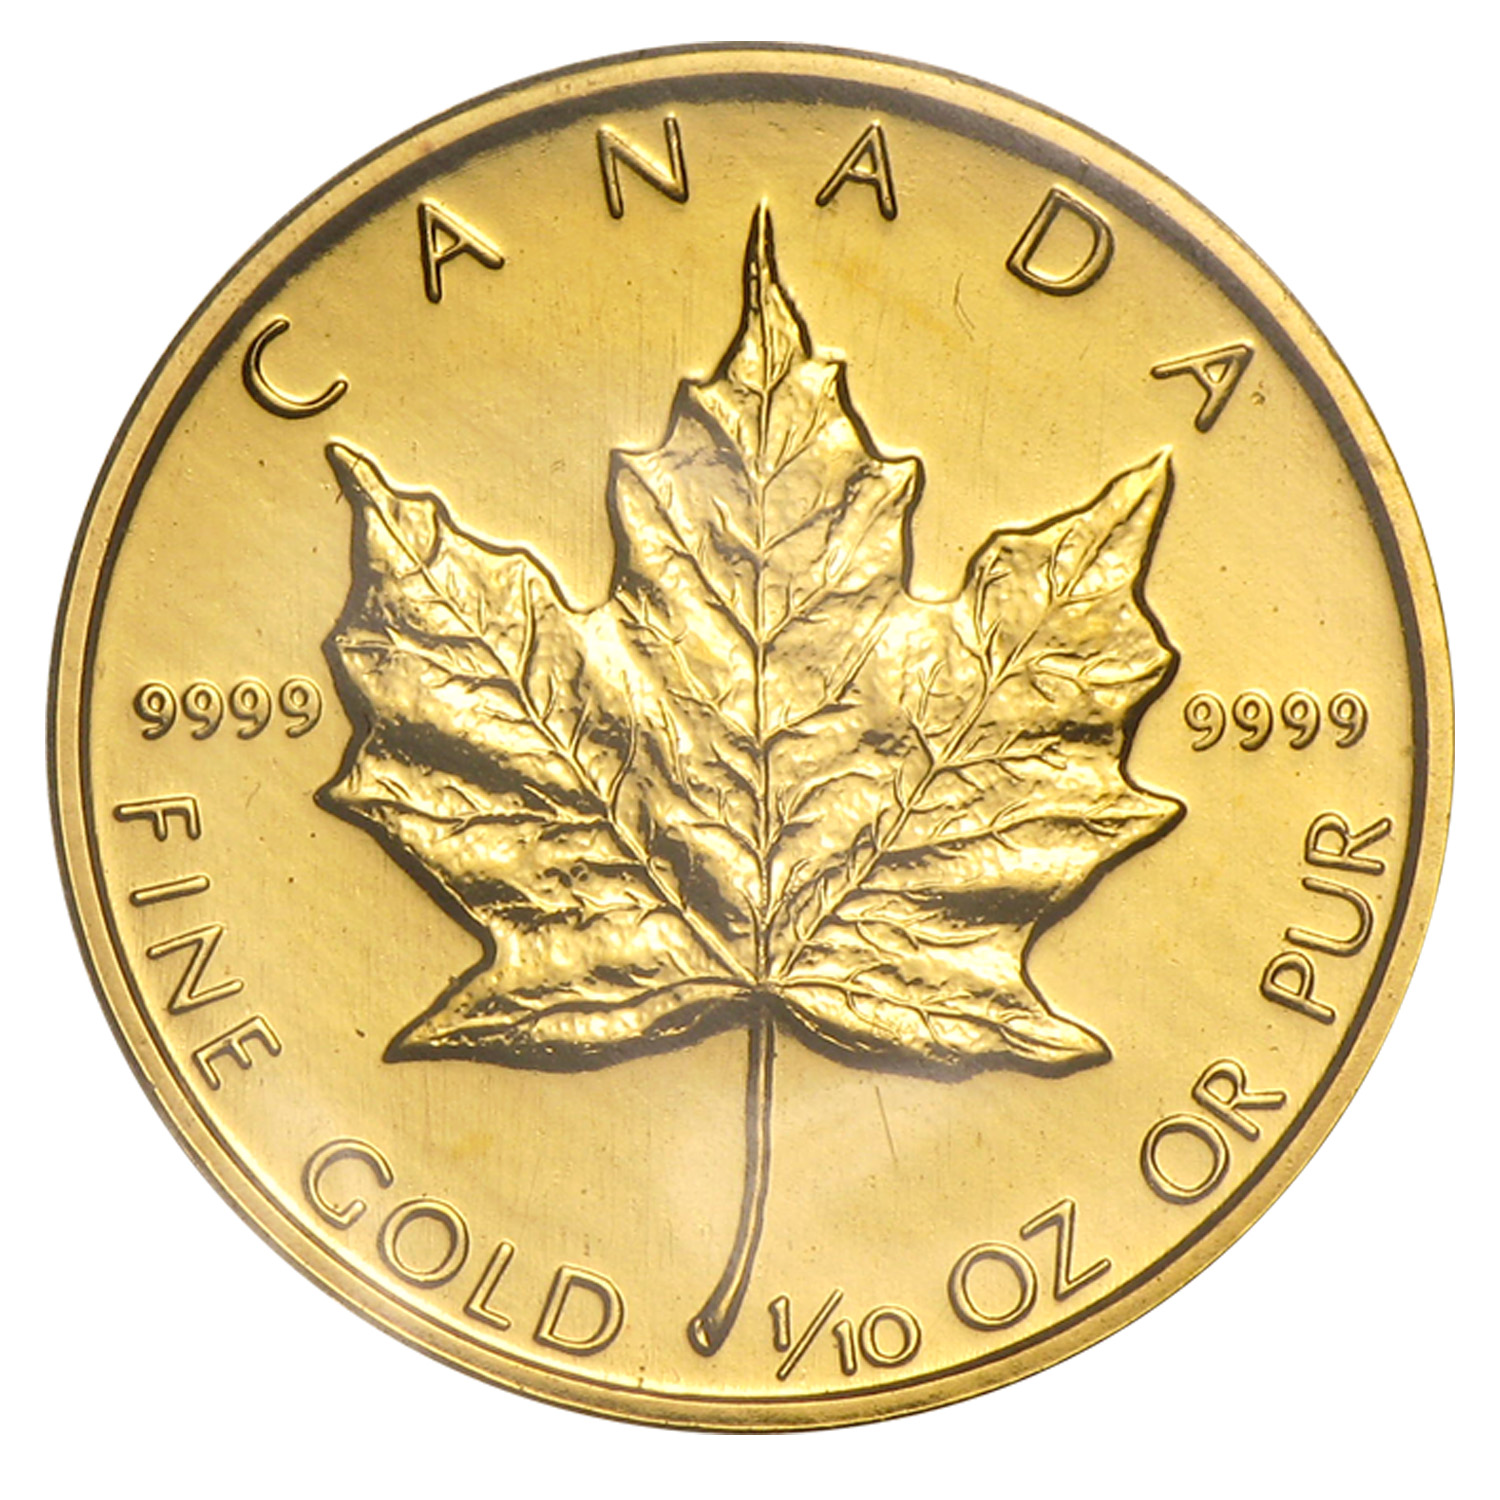 1989 Canada 1/10 oz Gold Maple Leaf BU